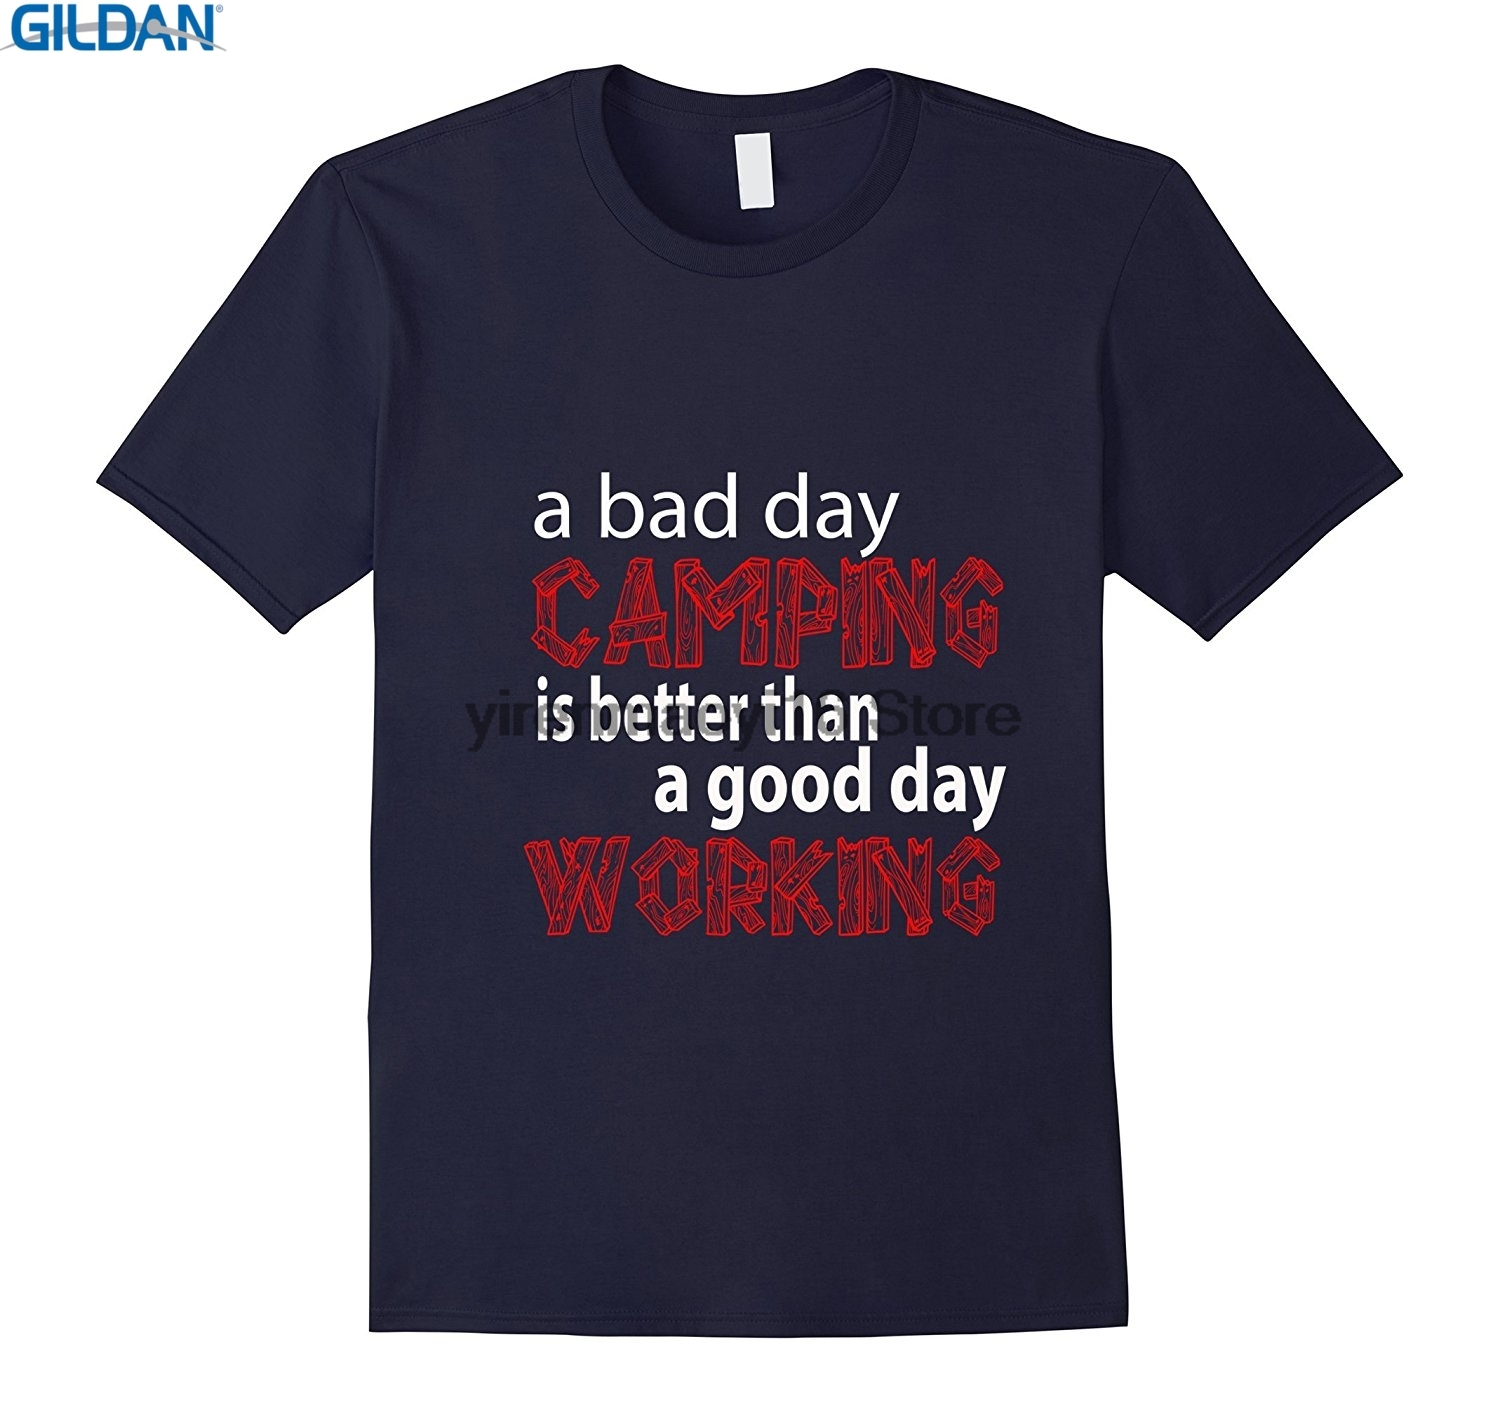 GILDAN 100% Cotton O-neck custom printed T-shirt A Bad Day Is Better Than A Good Day Working T Shirt